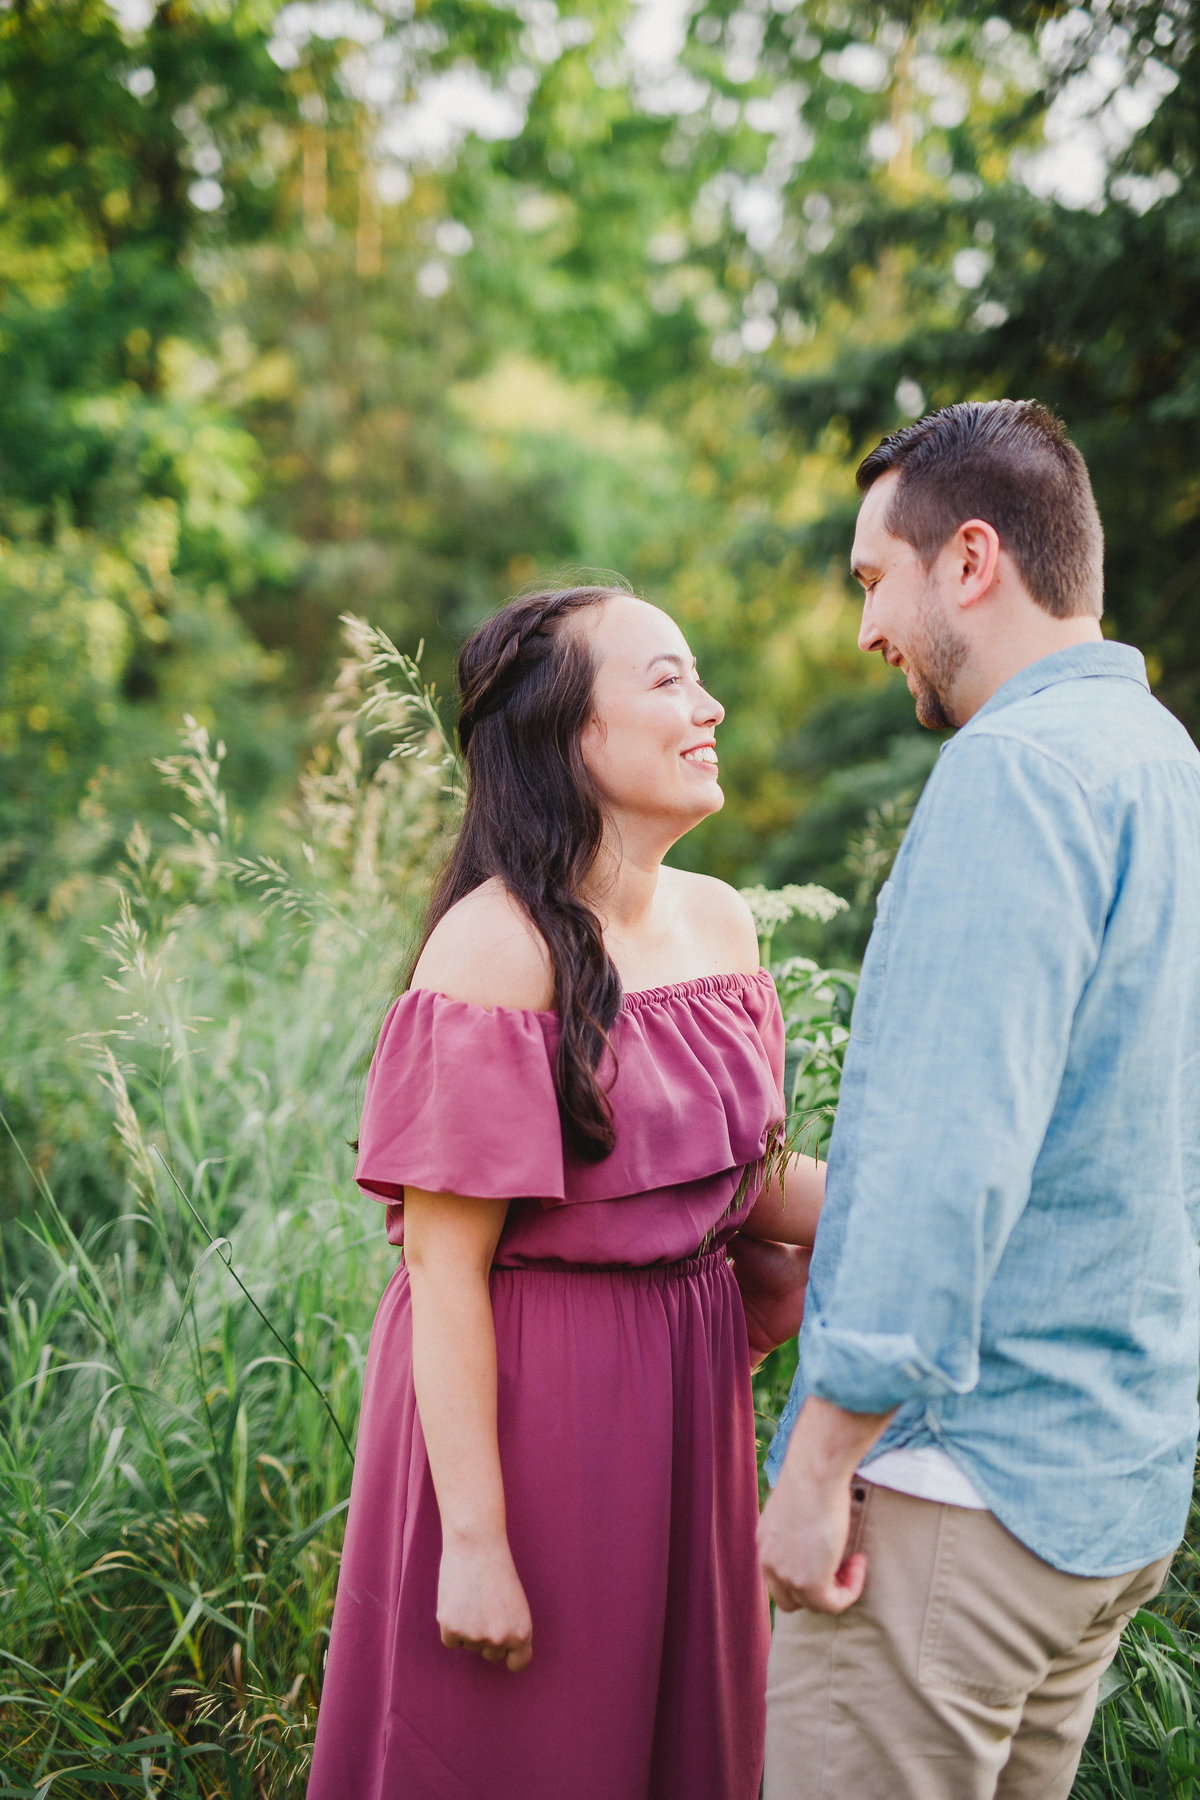 StephenAndMichelleEngaged_070617_WeeThreeSparrowsPhotography_013